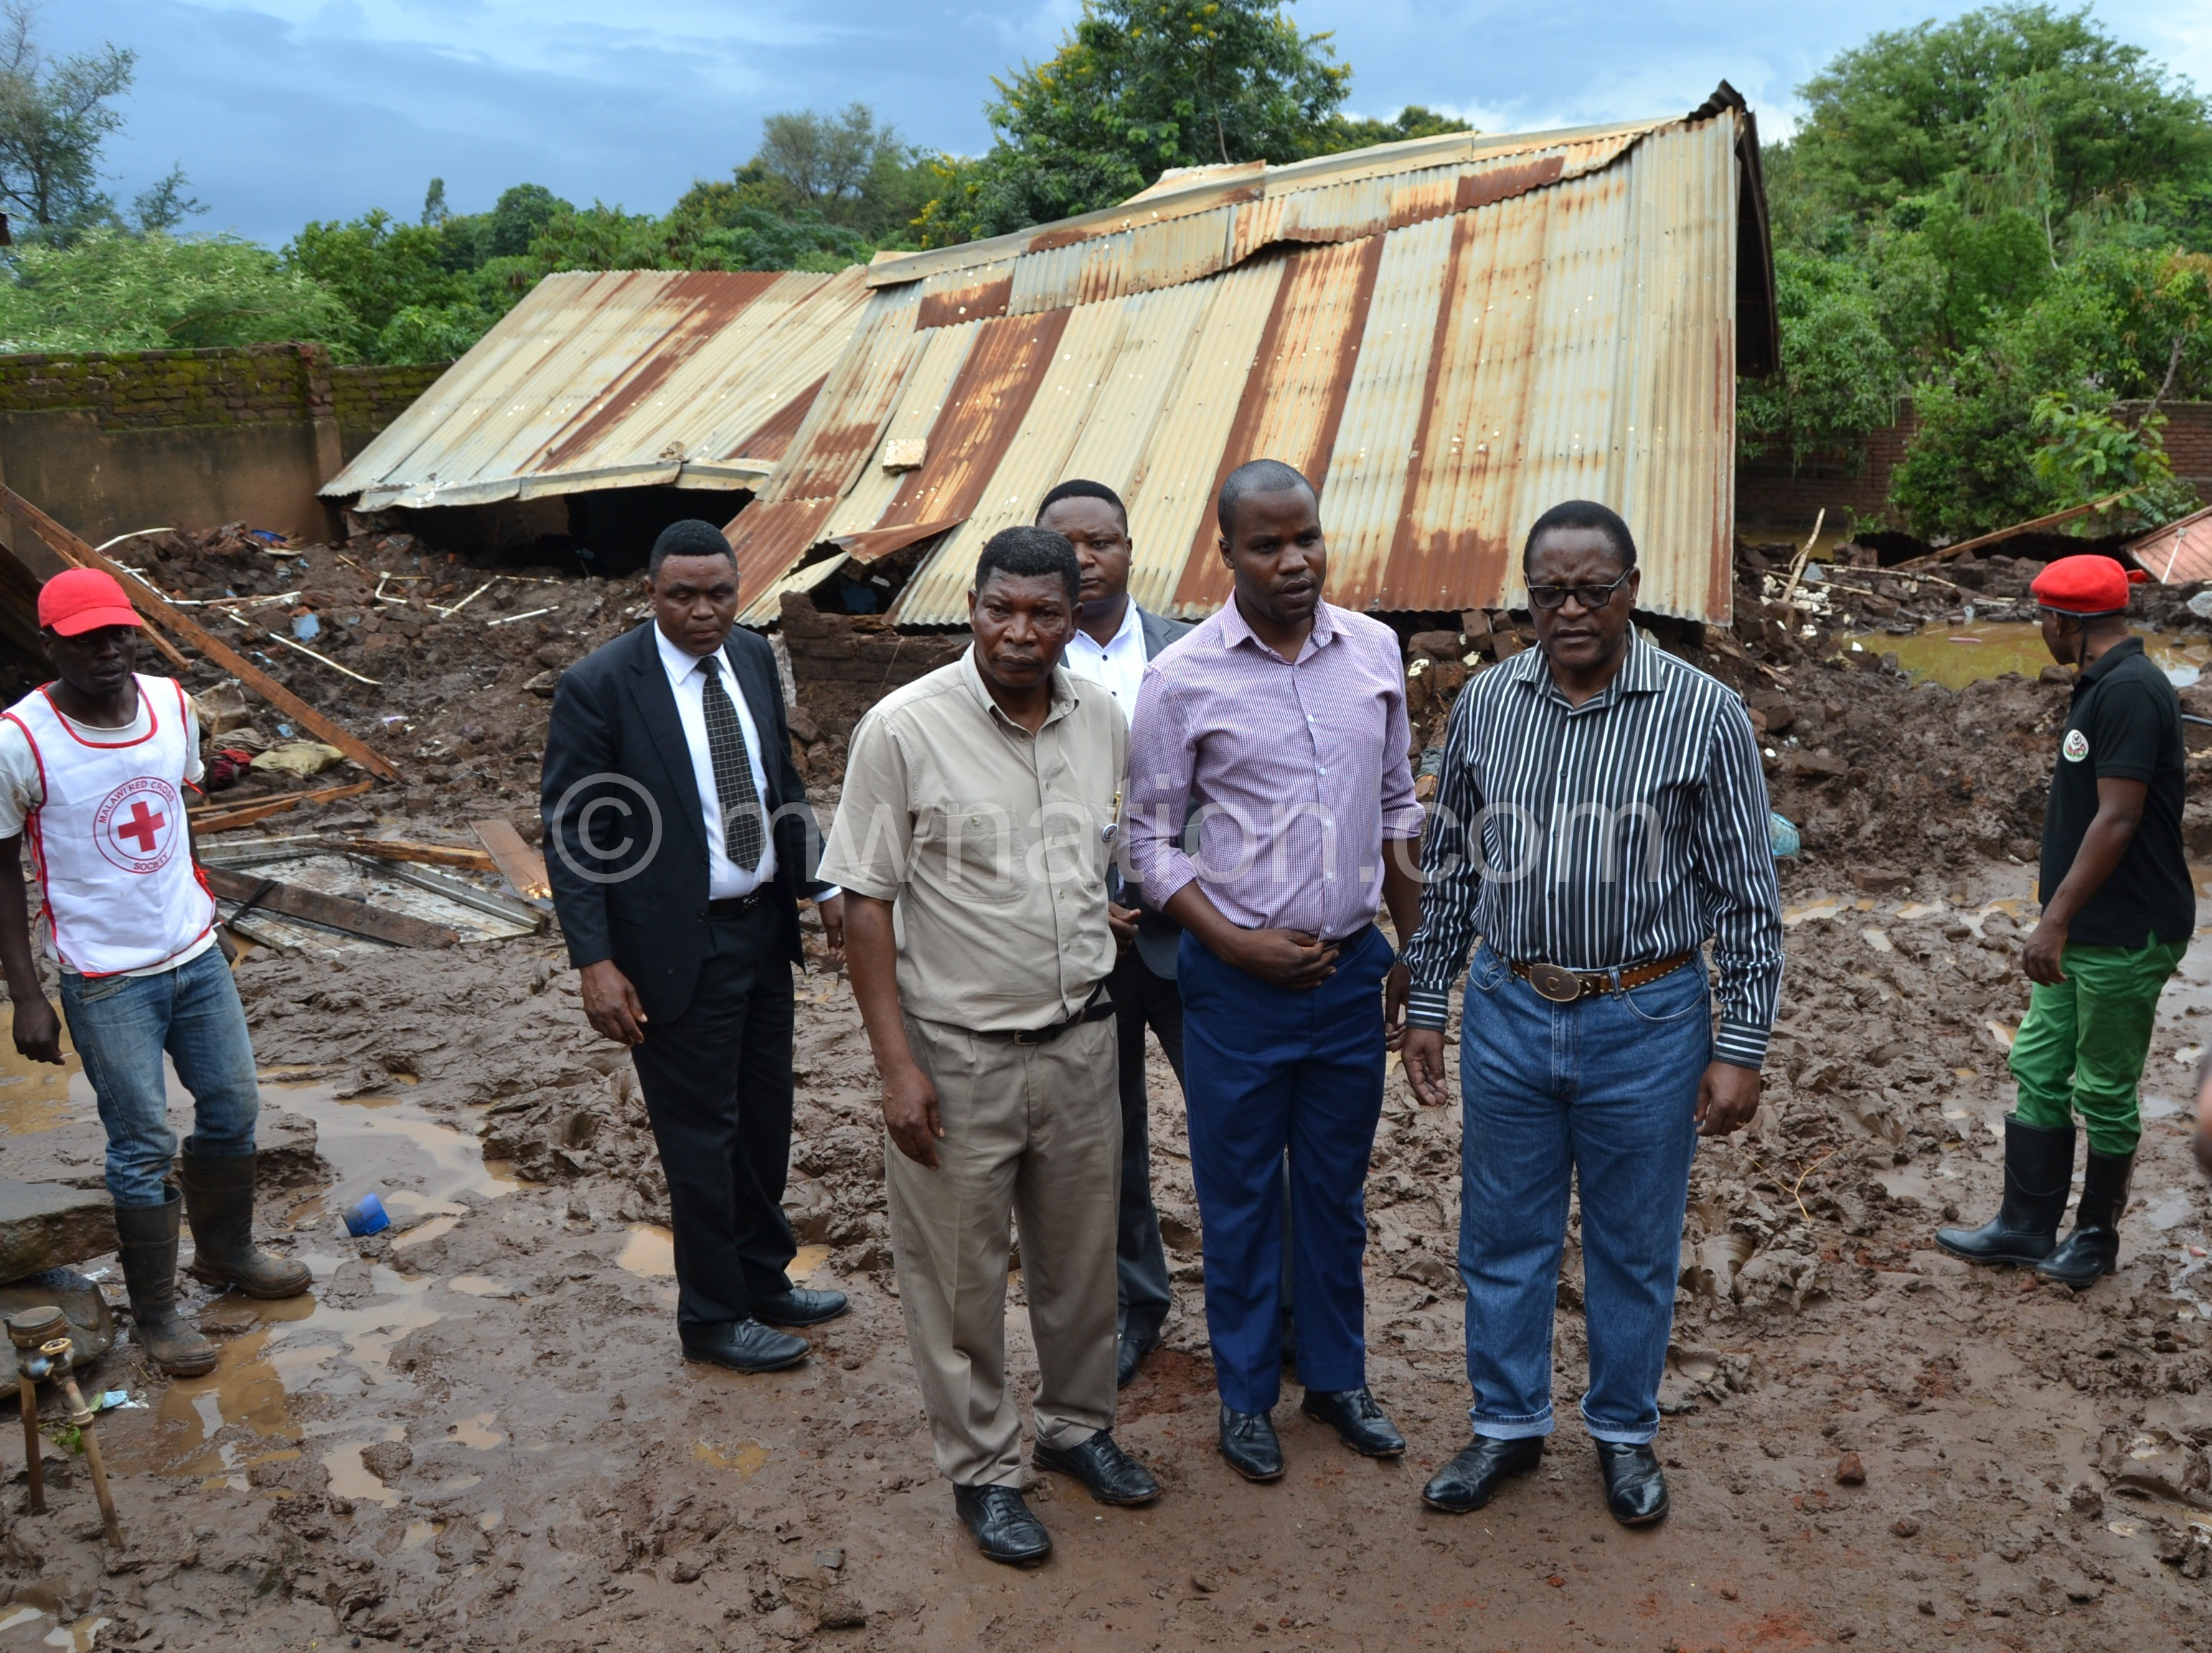 MCP President Lazarus Chakwera appreciates the damage caused to one of the affected households. Photo by Fatsani Gunya | The Nation Online